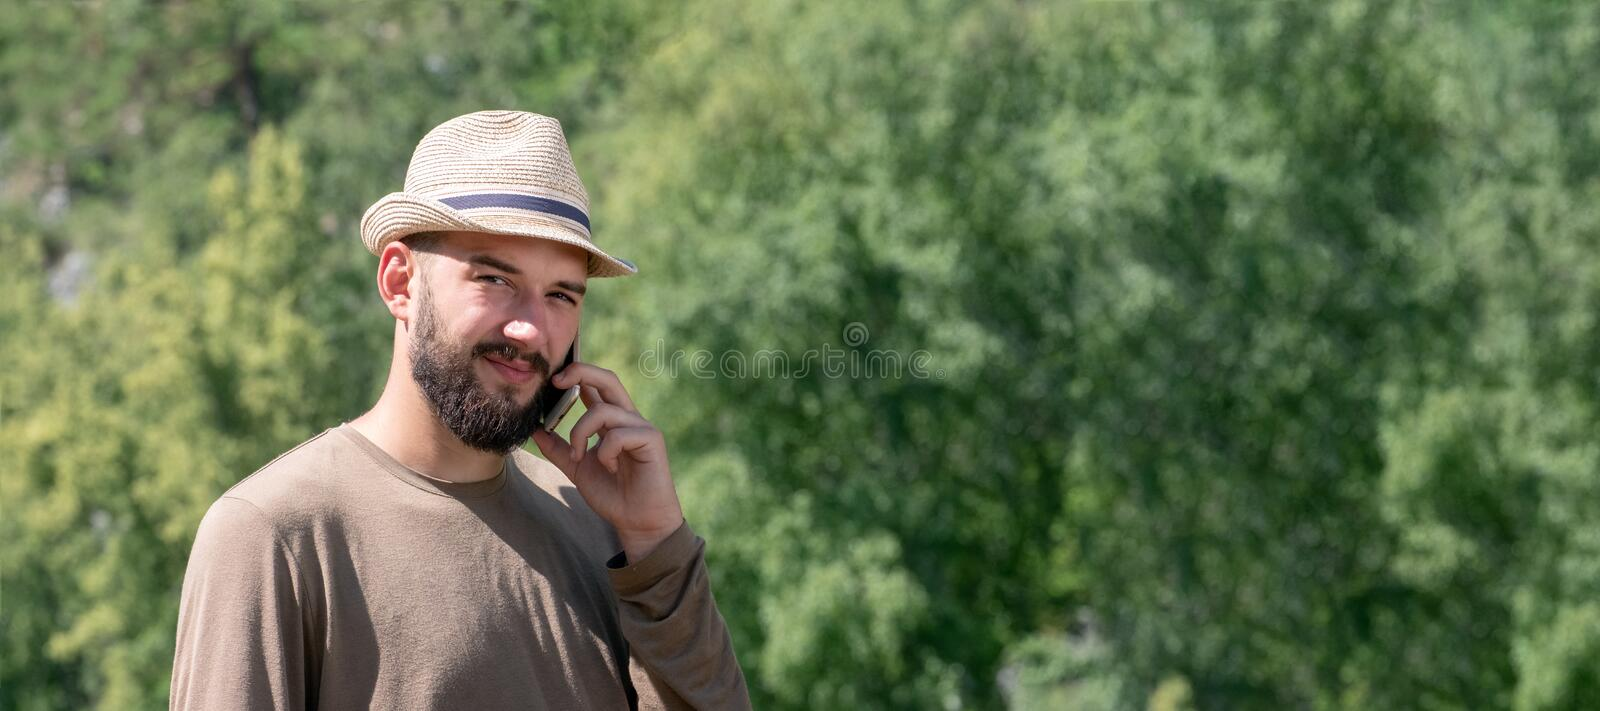 A bearded guy in a hat speaks on the phone and looks sadly into the frame. The lack of telephone communications in nature. The stock photography